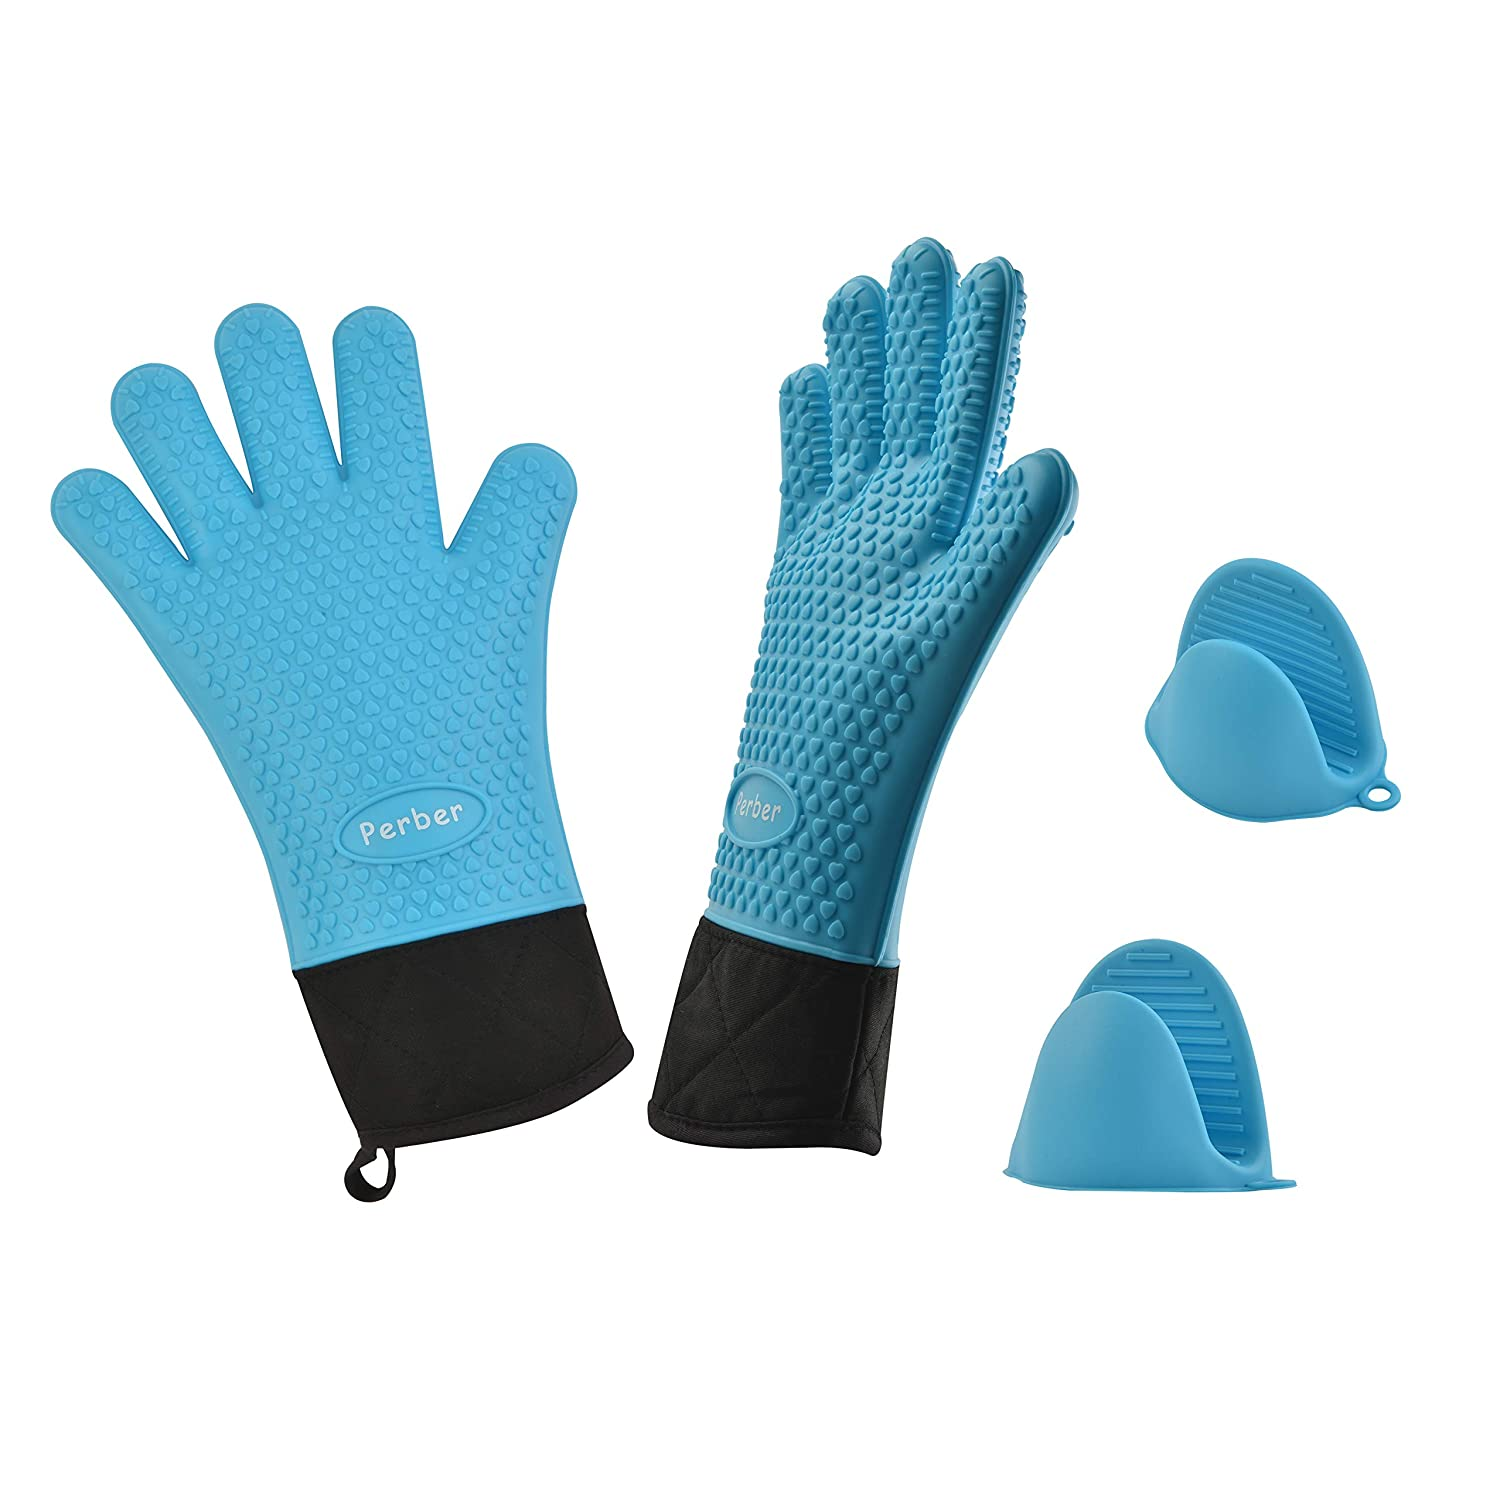 Silicone Cooking Gloves, Grilling Gloves, 1 Pair of Long Heat Resistant Waterproof Pot Holder & BBQ Oven Mitts with 1 Pair of Mini Cooking Pinch Grips, Perfect for Baking Barbecue and Kitchen,BPA Free